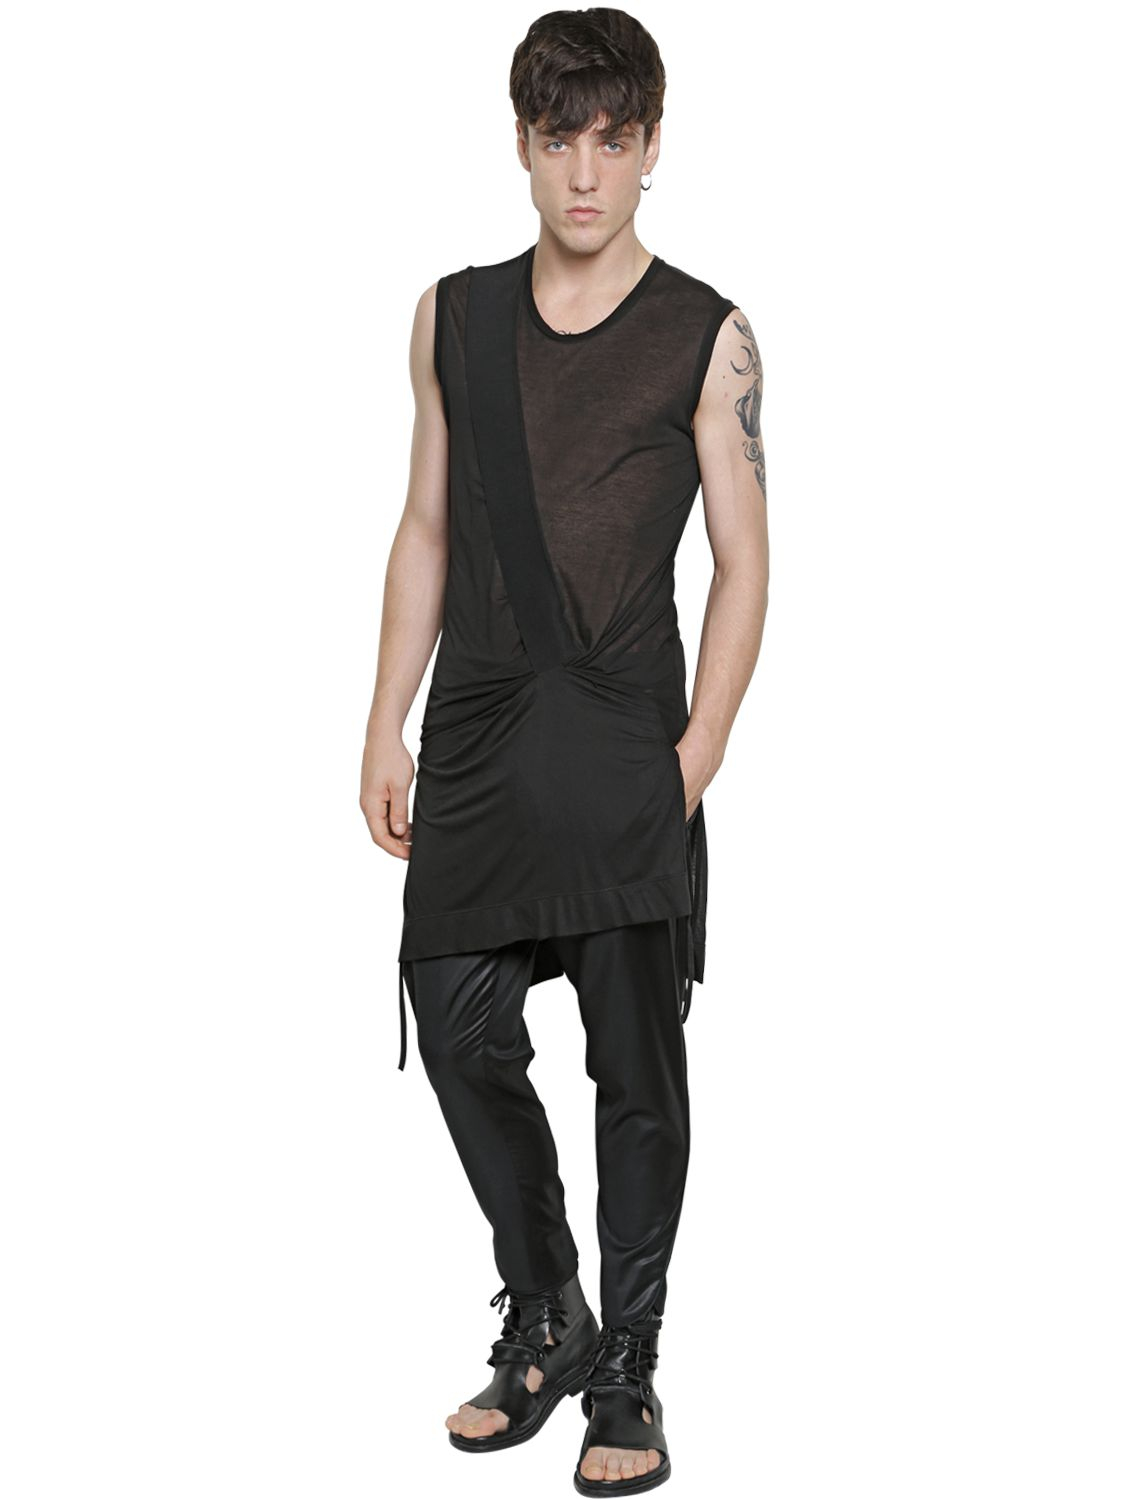 Tom Rebl Sleeveless Extra Long Cotton T-shirt in Black for Men - Lyst 5768a939329